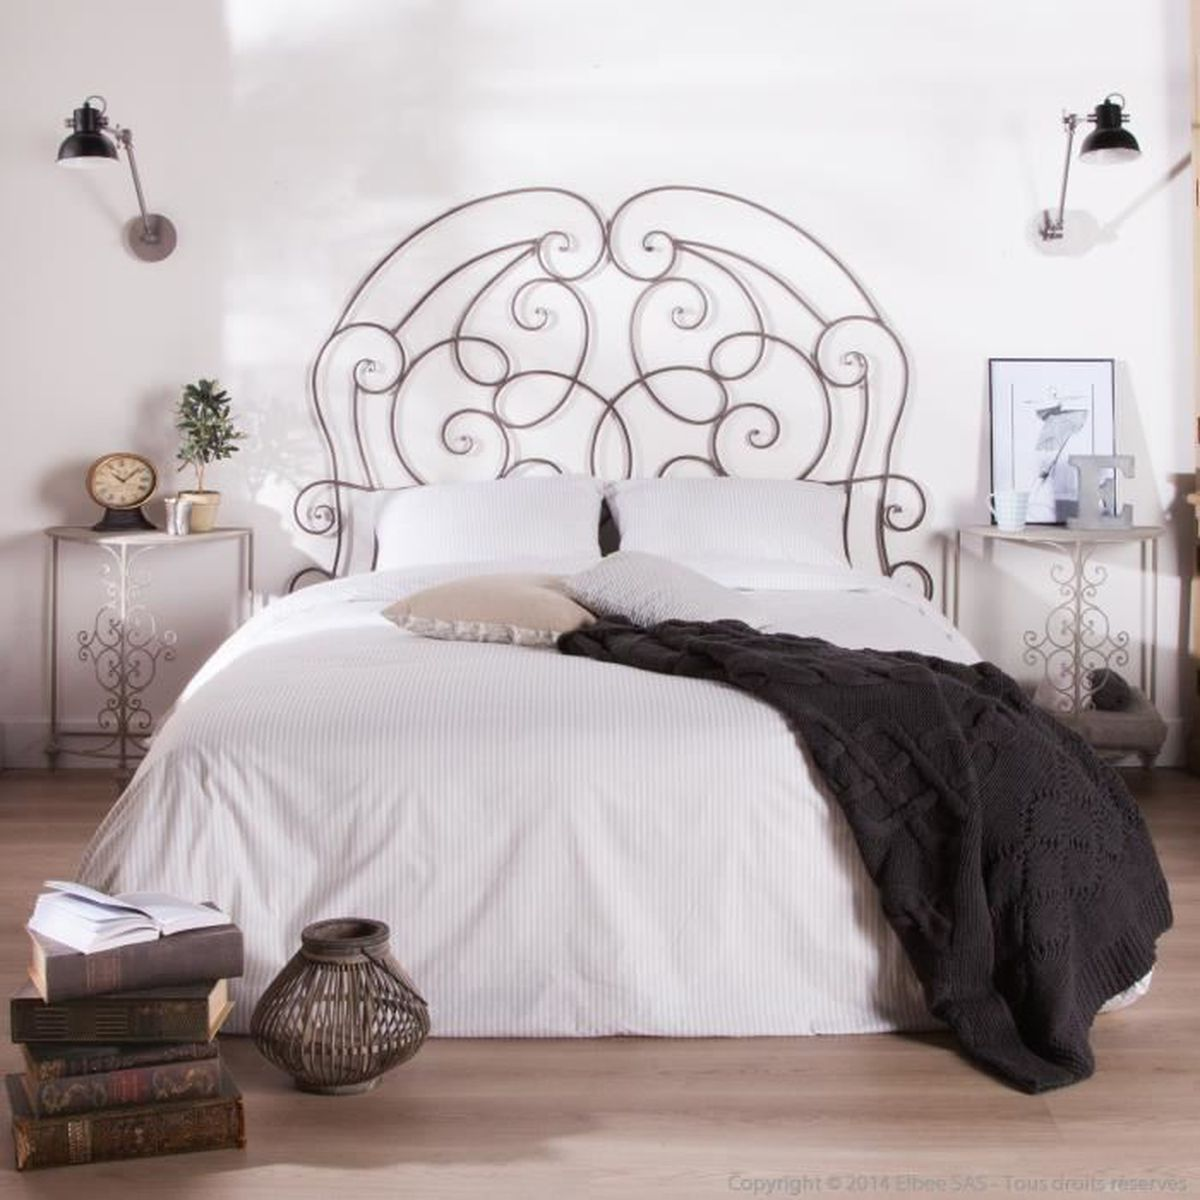 tete de lit fer achat vente tete de lit fer pas cher. Black Bedroom Furniture Sets. Home Design Ideas